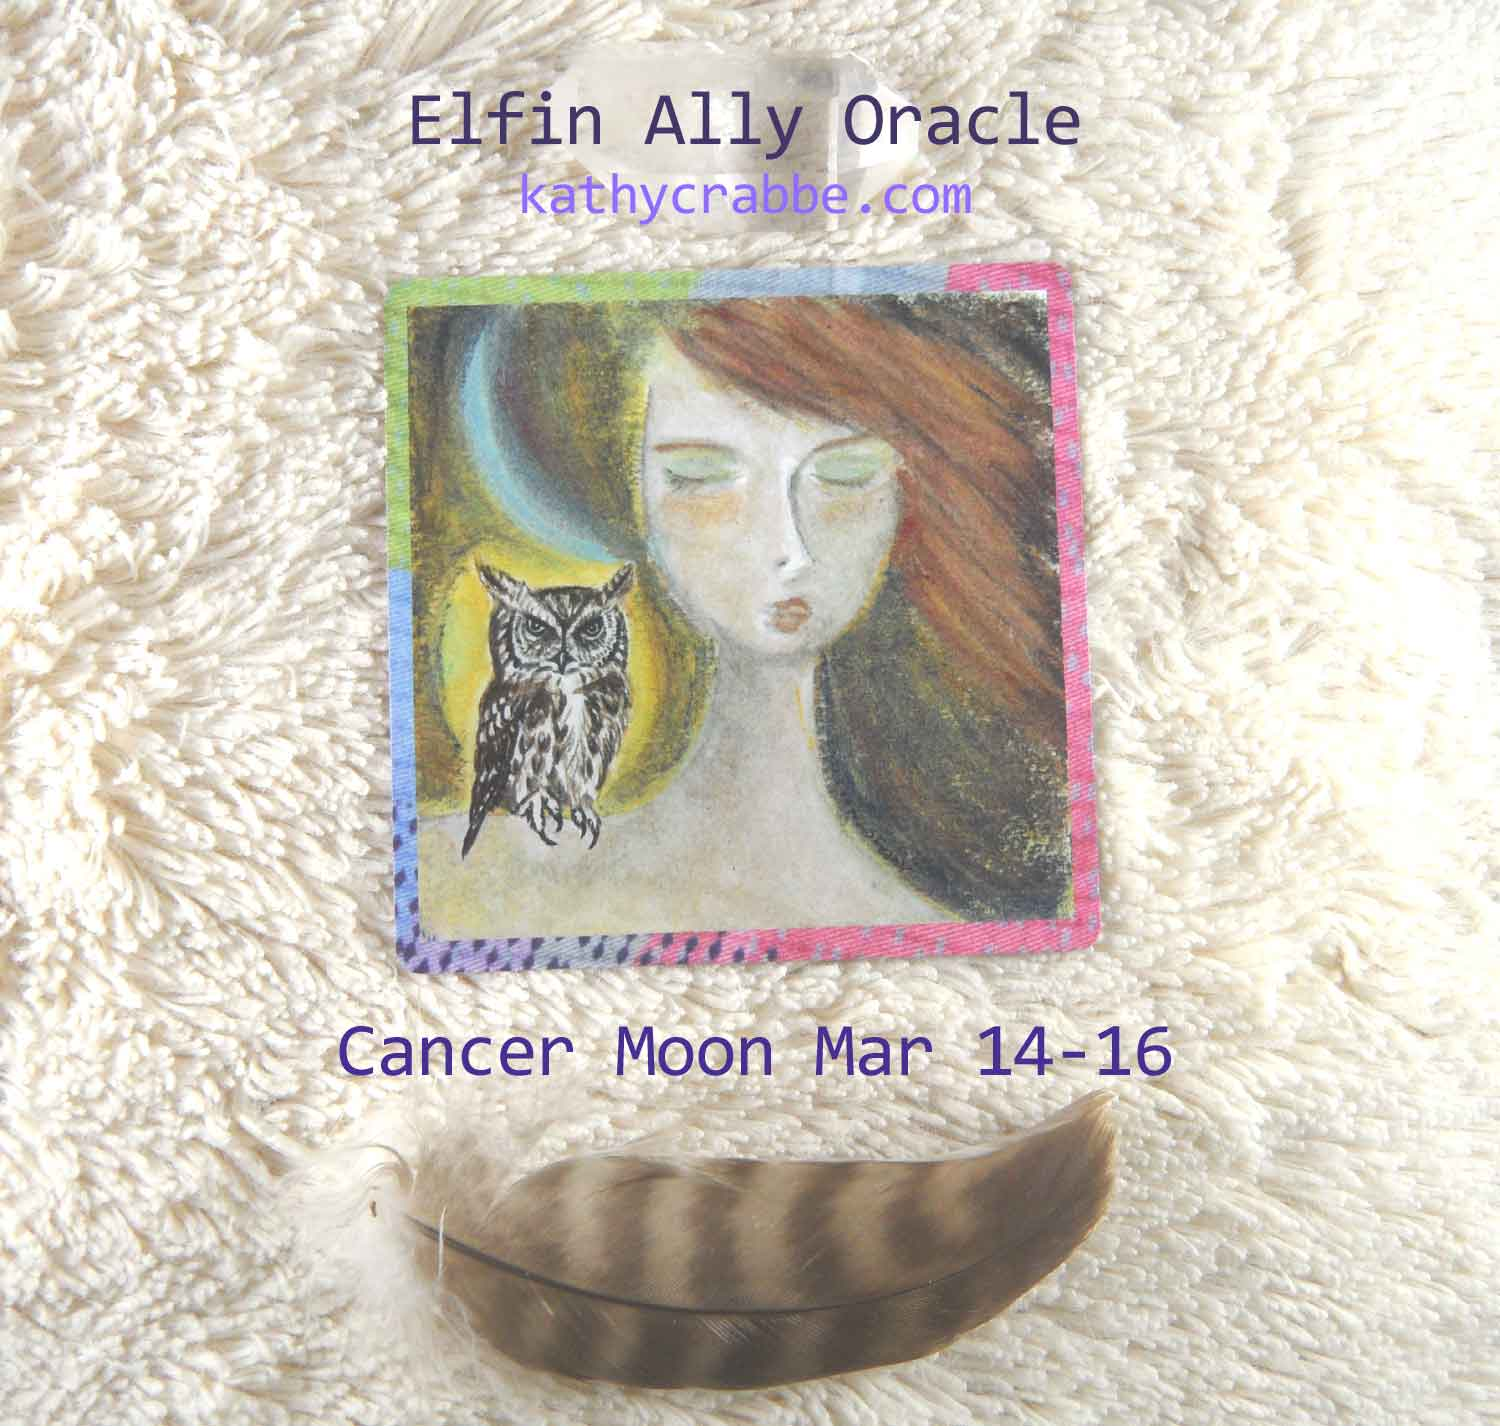 Cancer Moon-Vibes by Kathy Crabbe